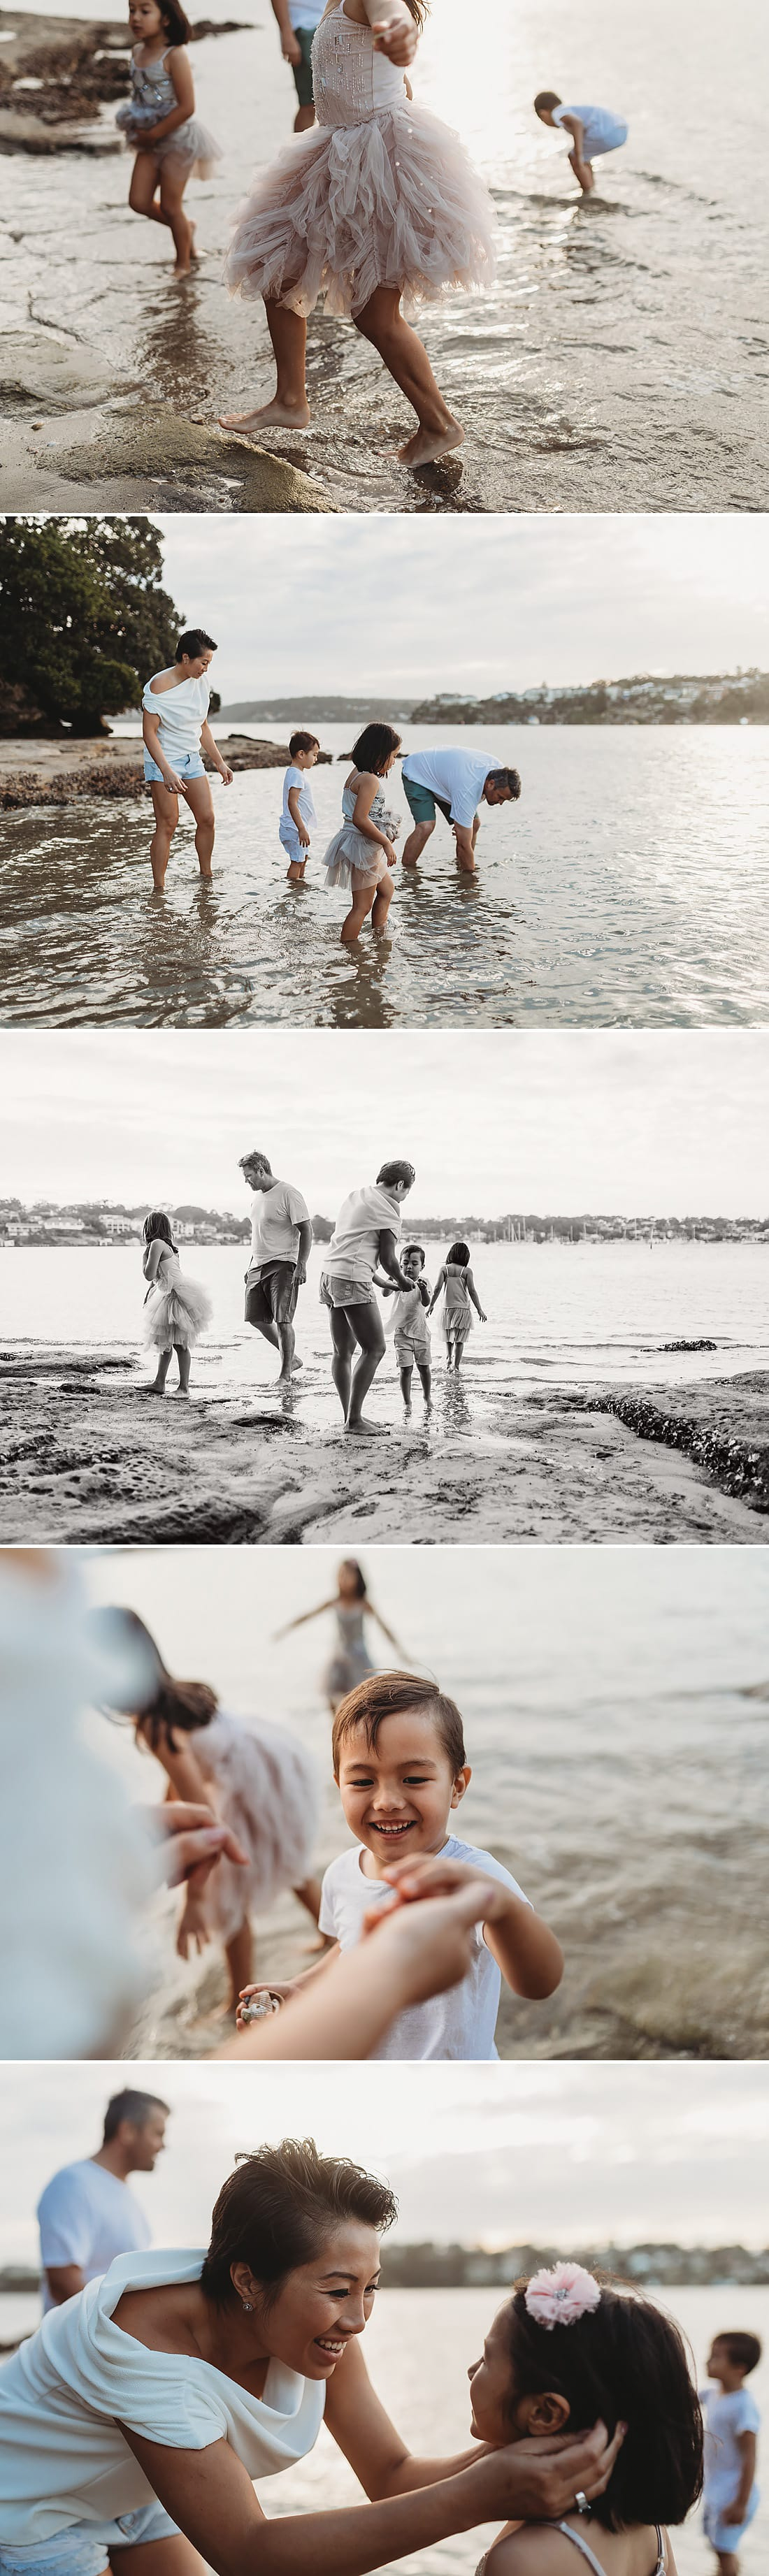 Sydney-lifestyle-family-photography-sutherland-shire